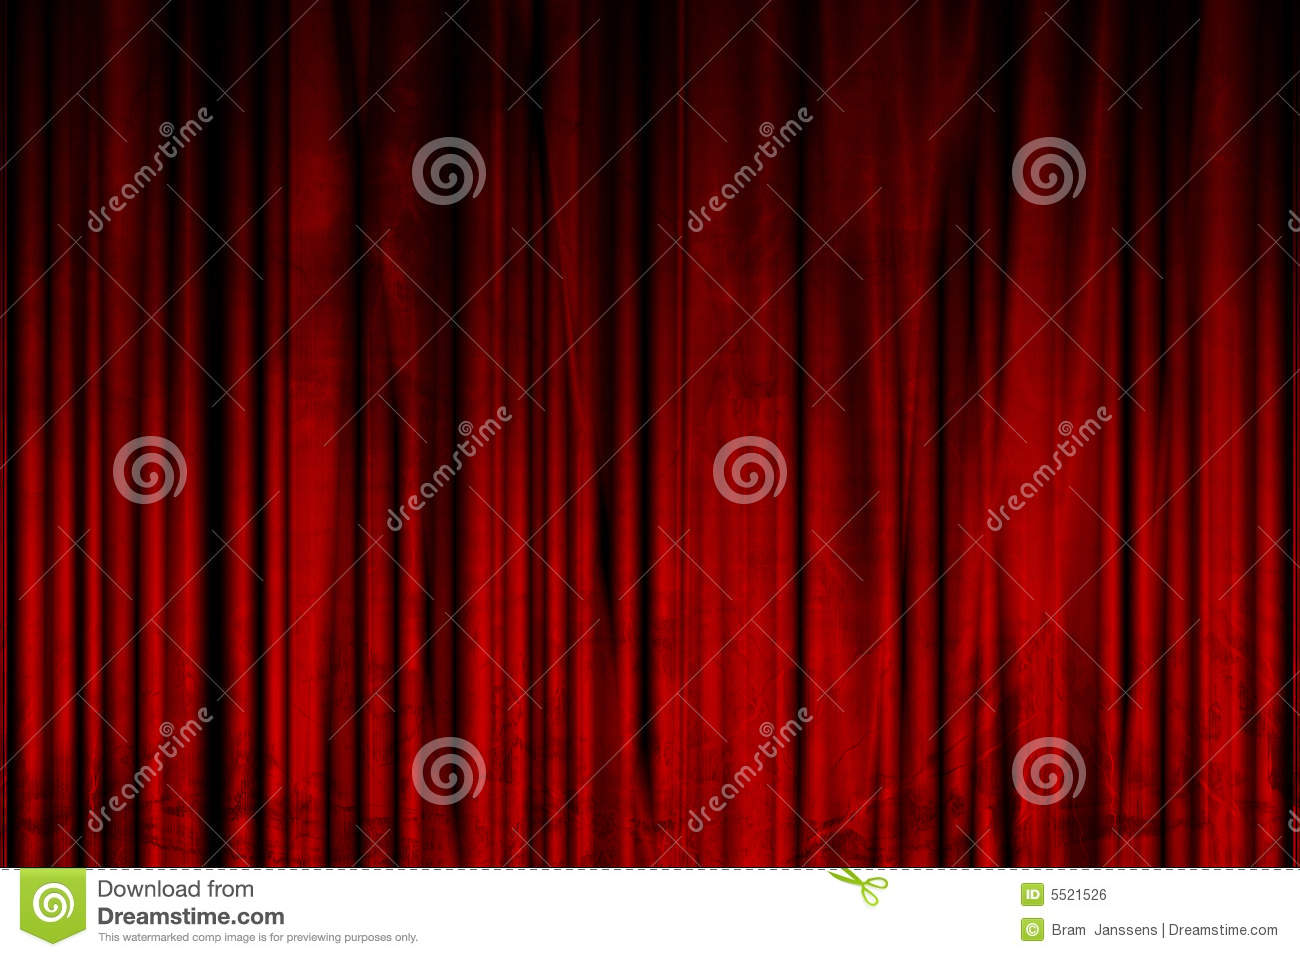 Movie Or Theater Curtain Royalty Free Stock Image - Image: 5521526